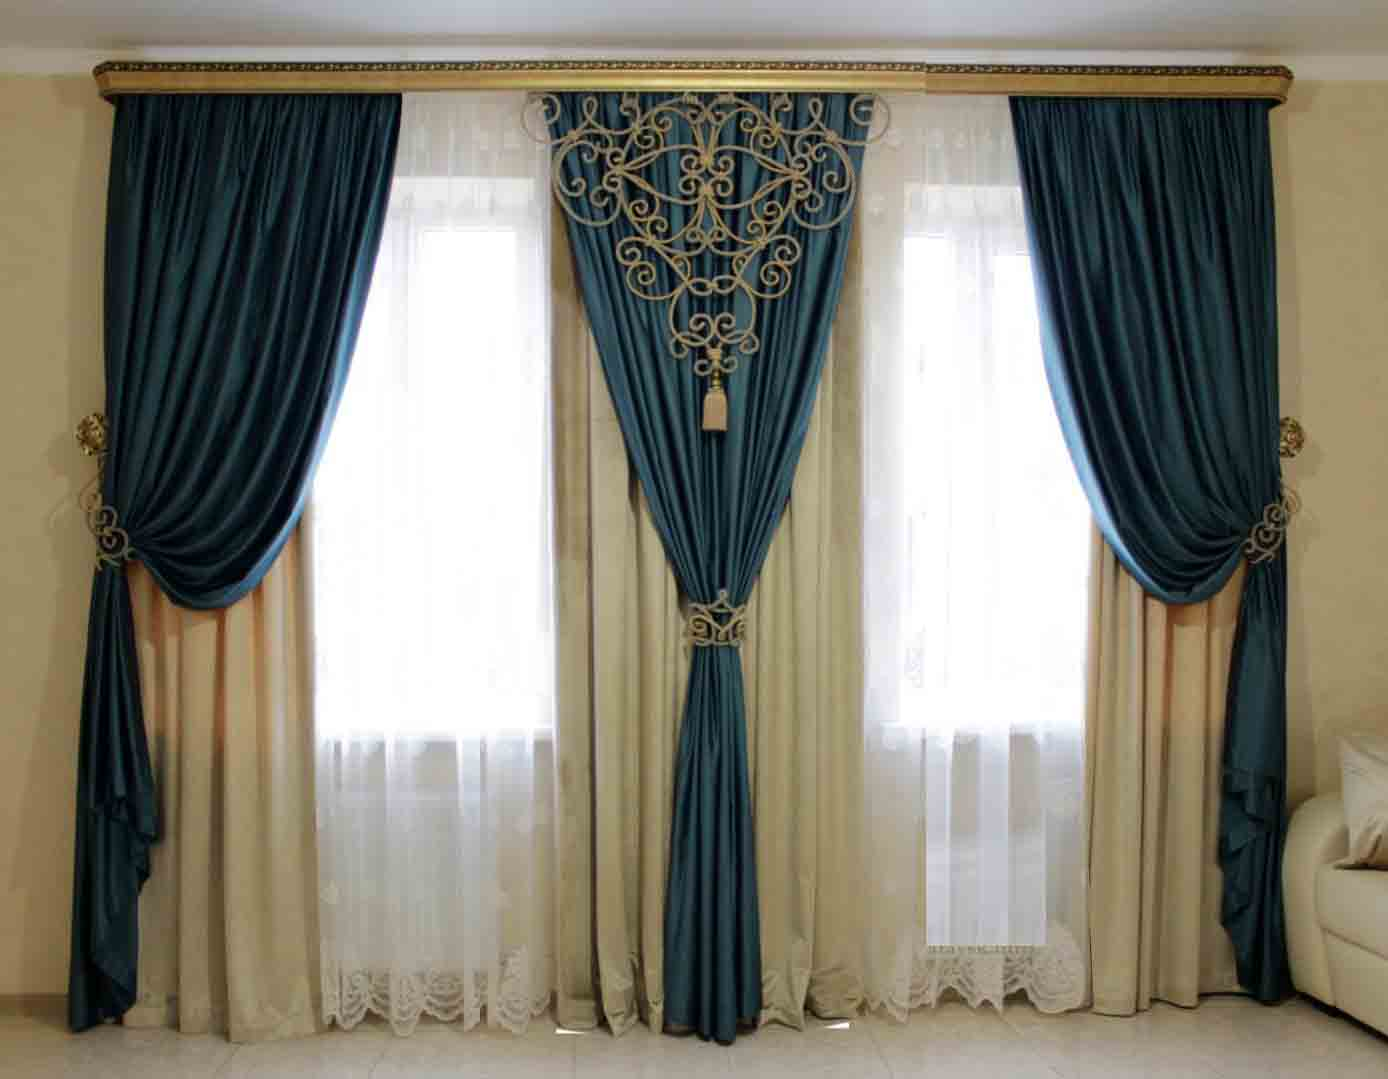 modern curtain designs for bedrooms top 50 curtain design ideas for bedroom modern interior 19252